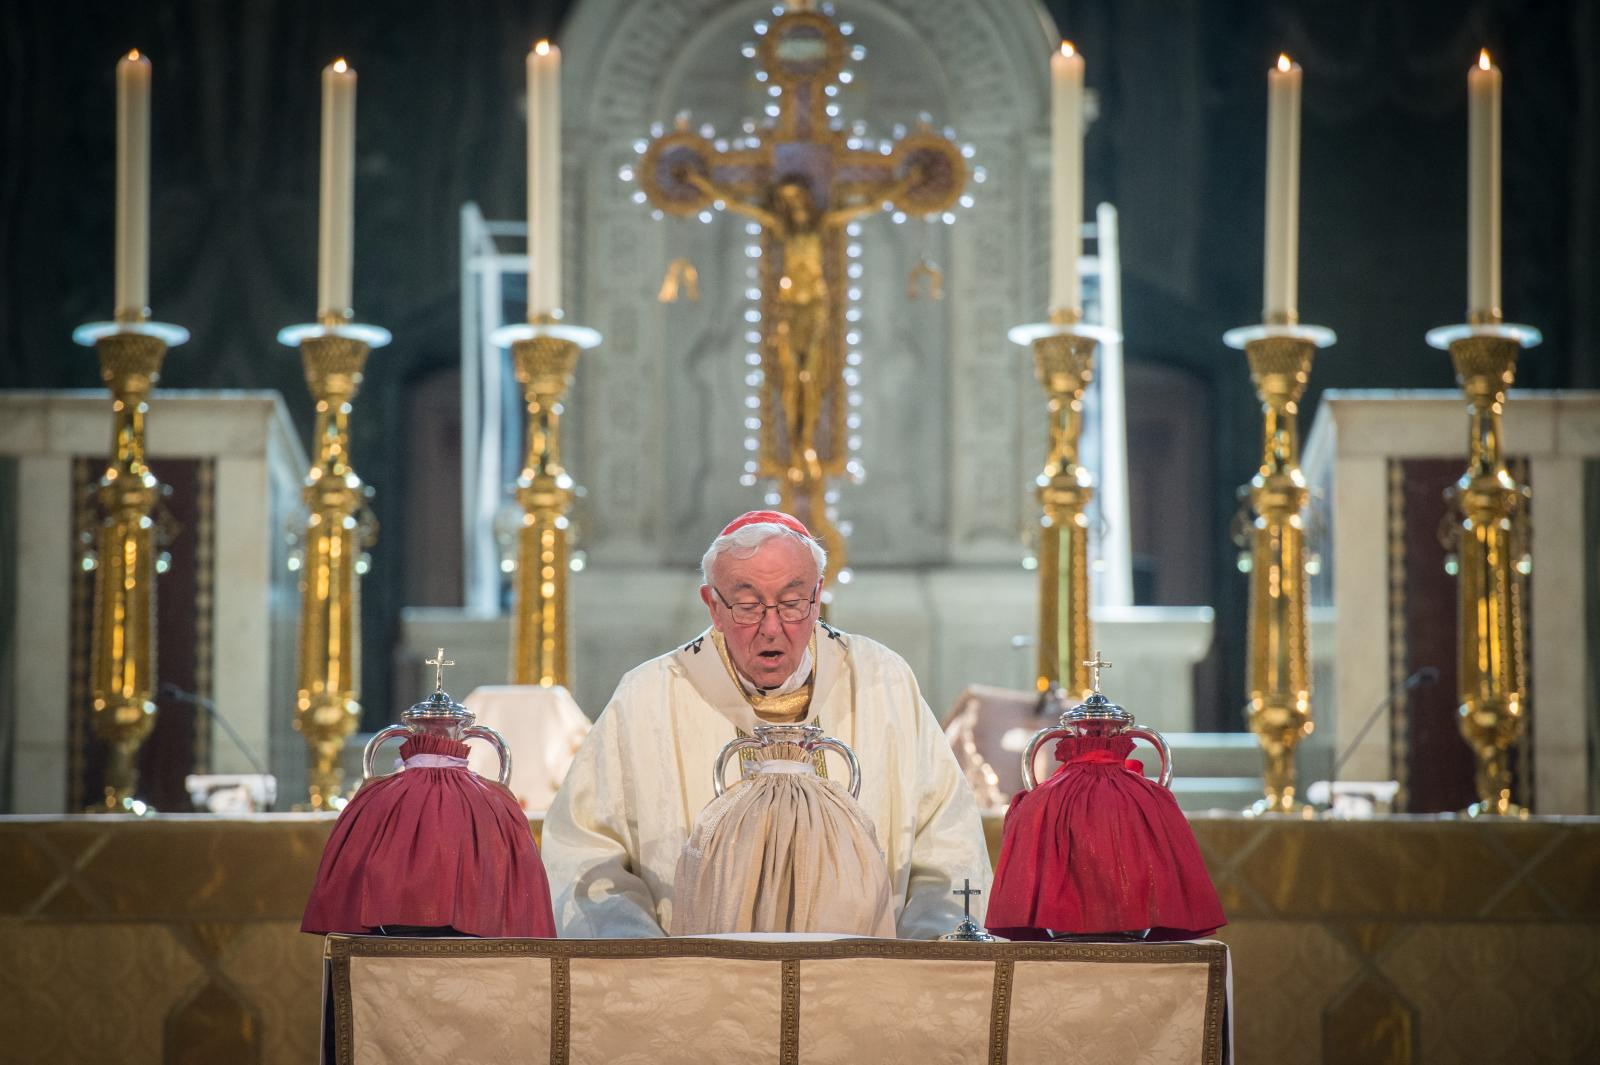 Bond of unity in Christ is 'unbreakable', says Cardinal